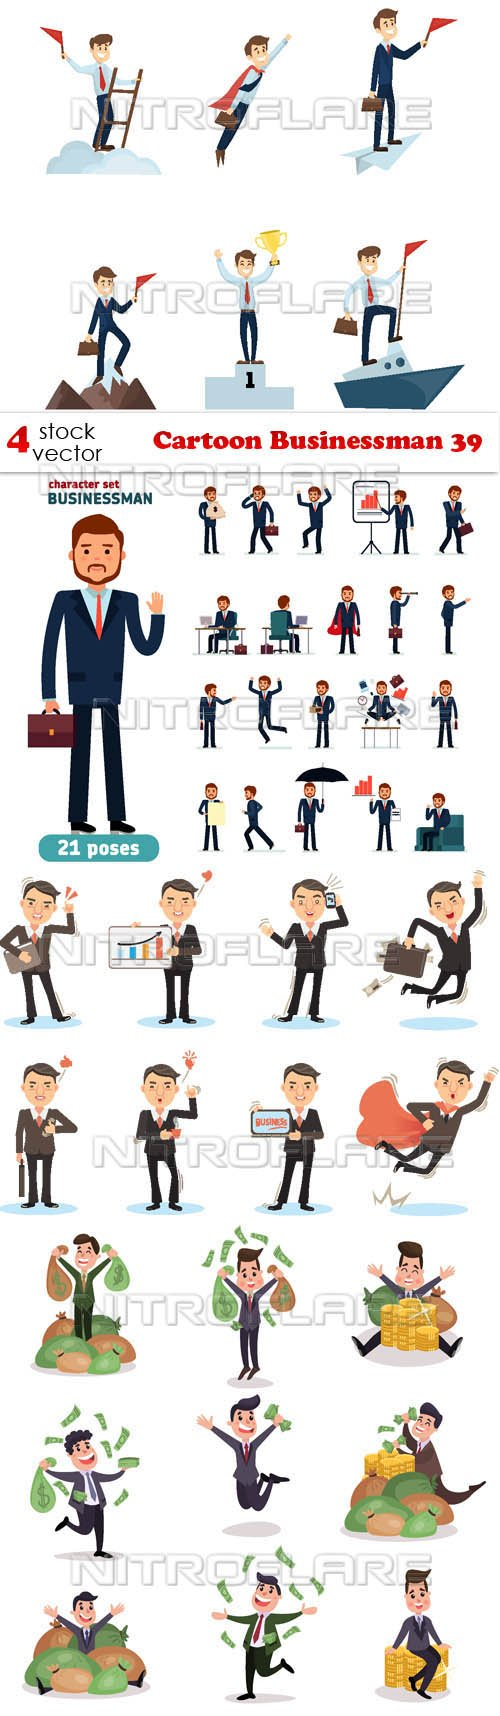 Vectors - Cartoon Businessman 39